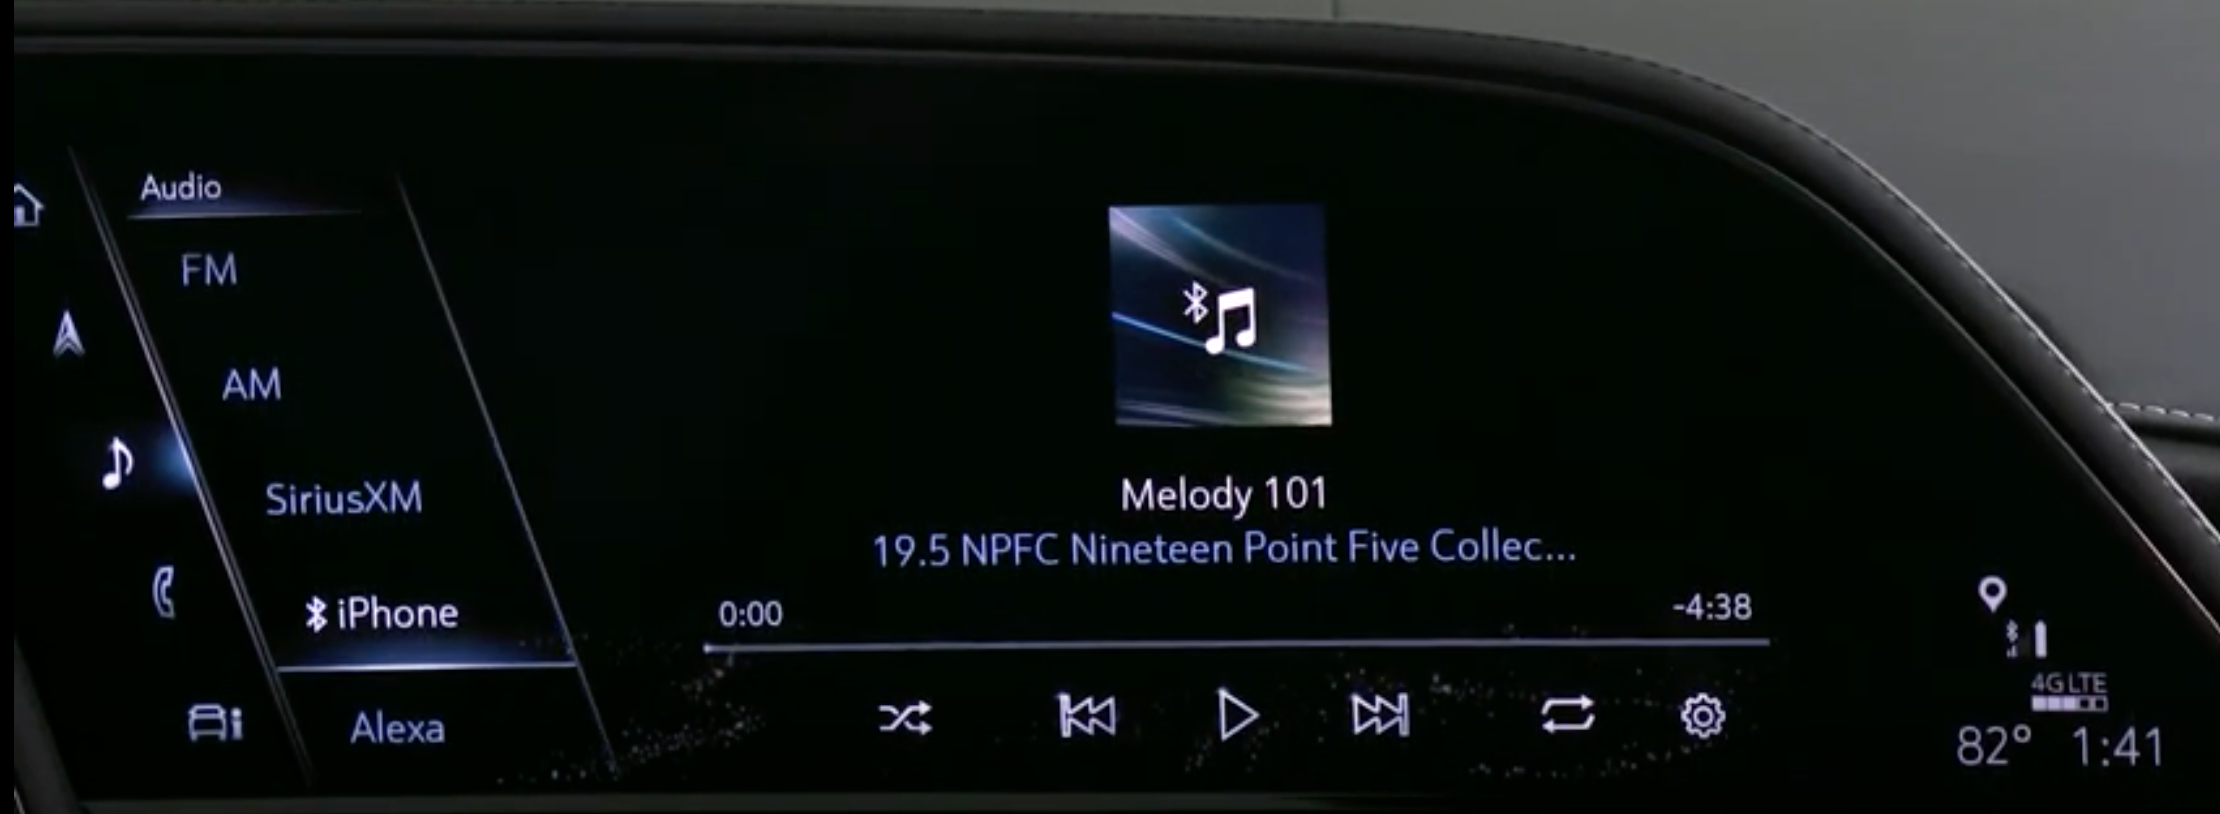 Music player when it is playing from a connected phone with a list of other sources on the left